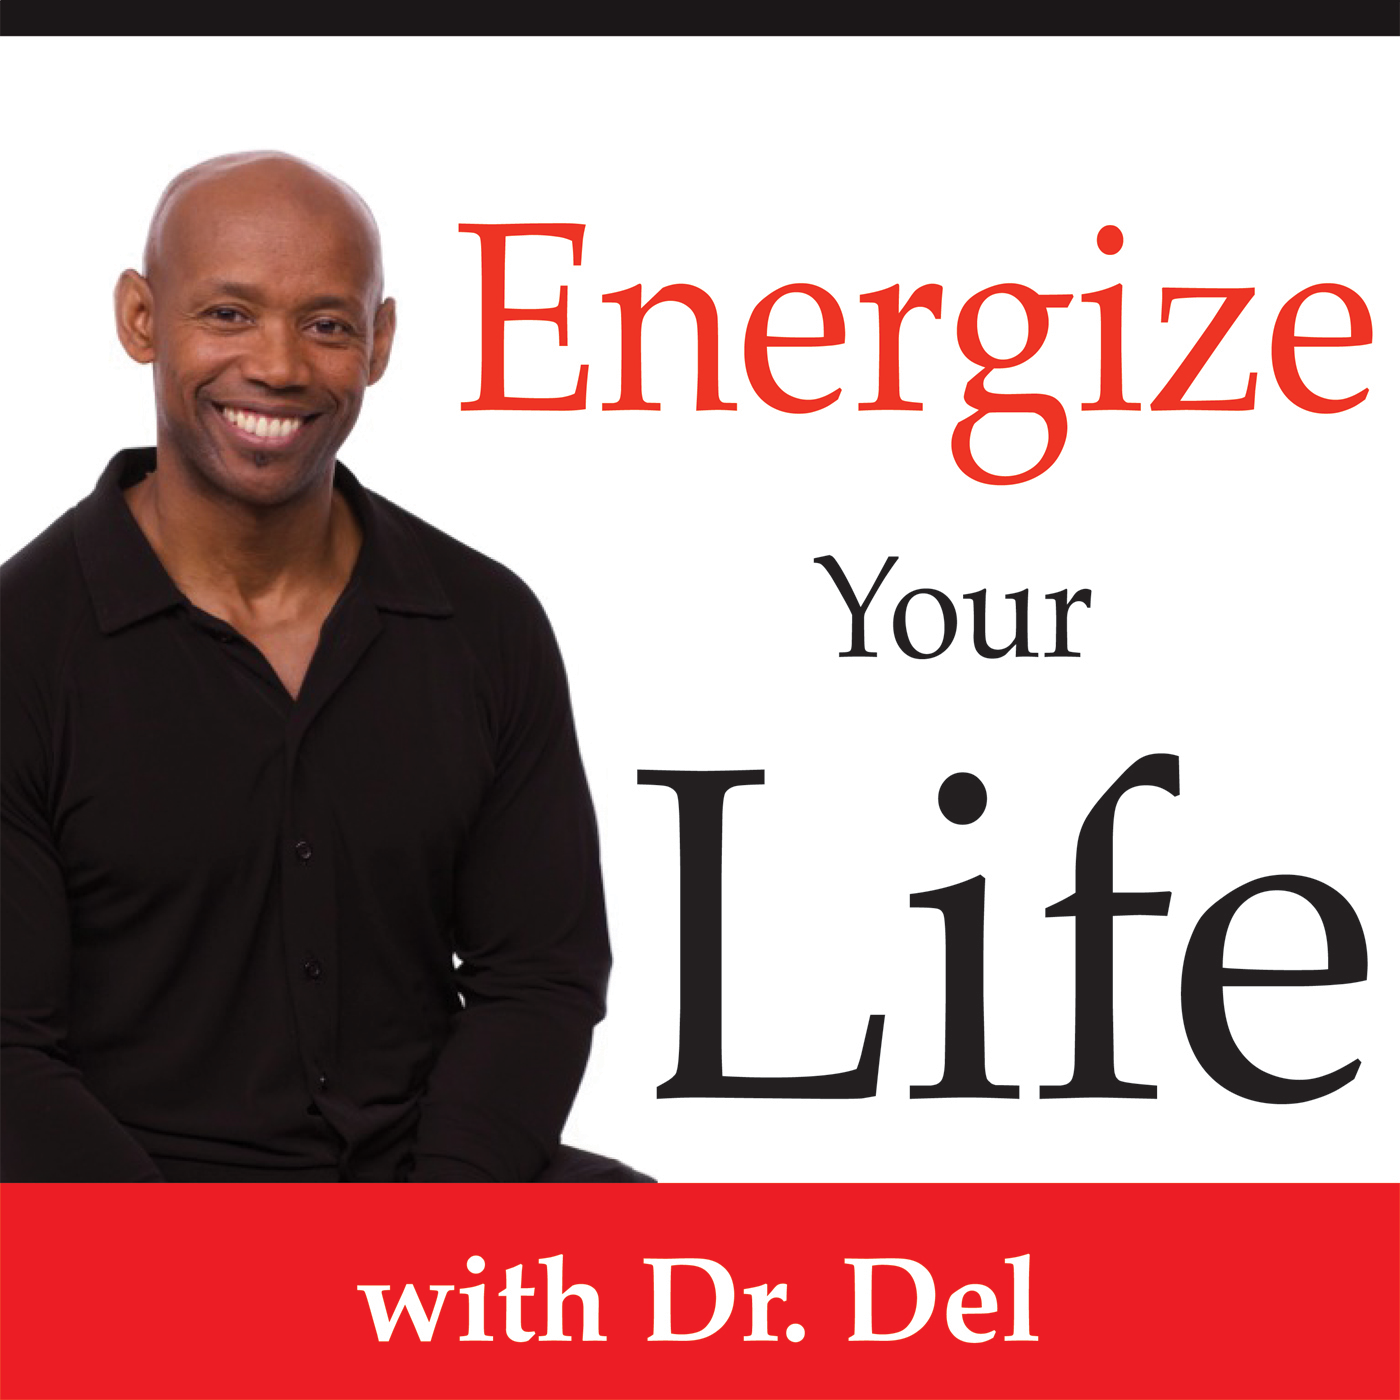 Energize Your Life